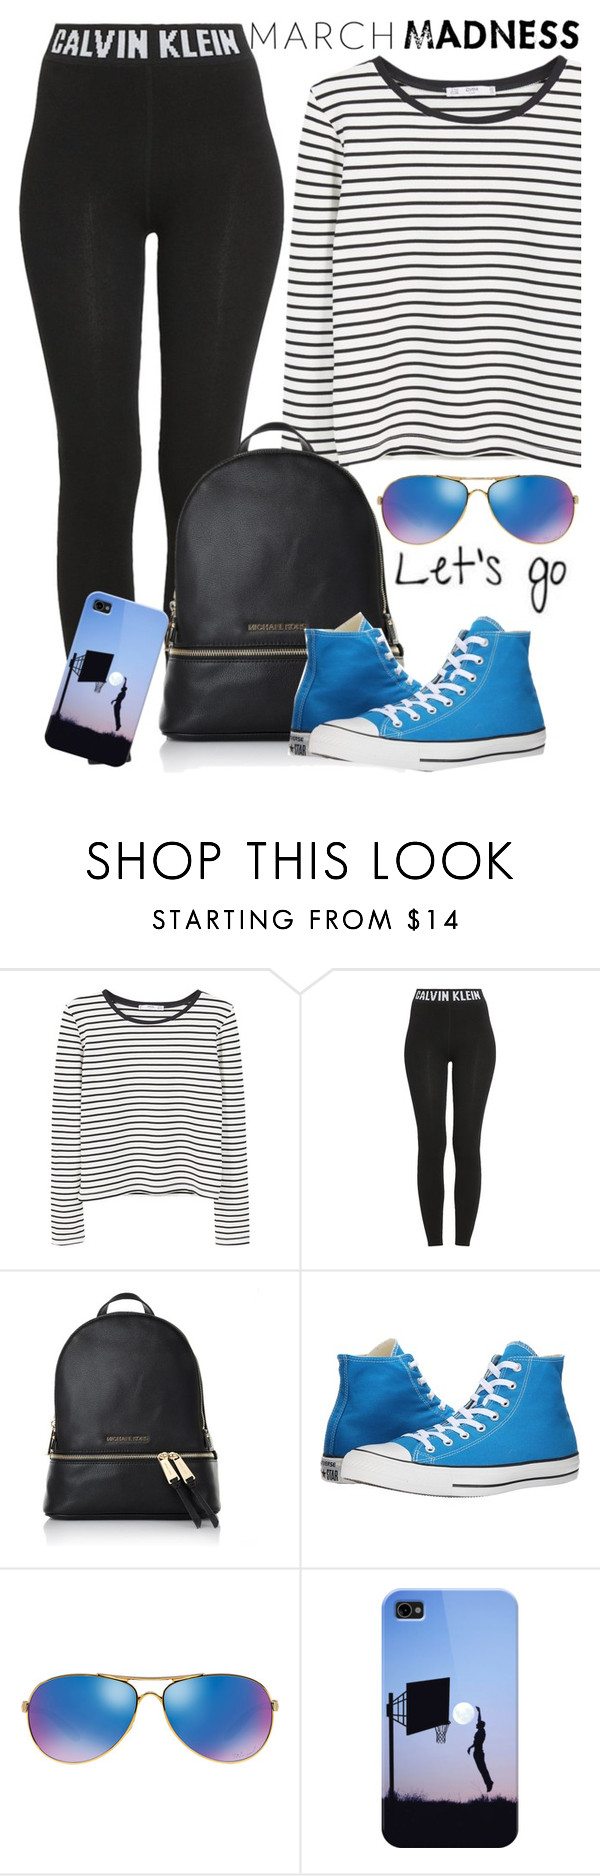 """""""March Madness begins!"""" by juliehooper ❤ liked on Polyvore featuring MANGO, Calvin Klein, Michael Kors, Converse, Oakley, Casetify and marchmadness"""